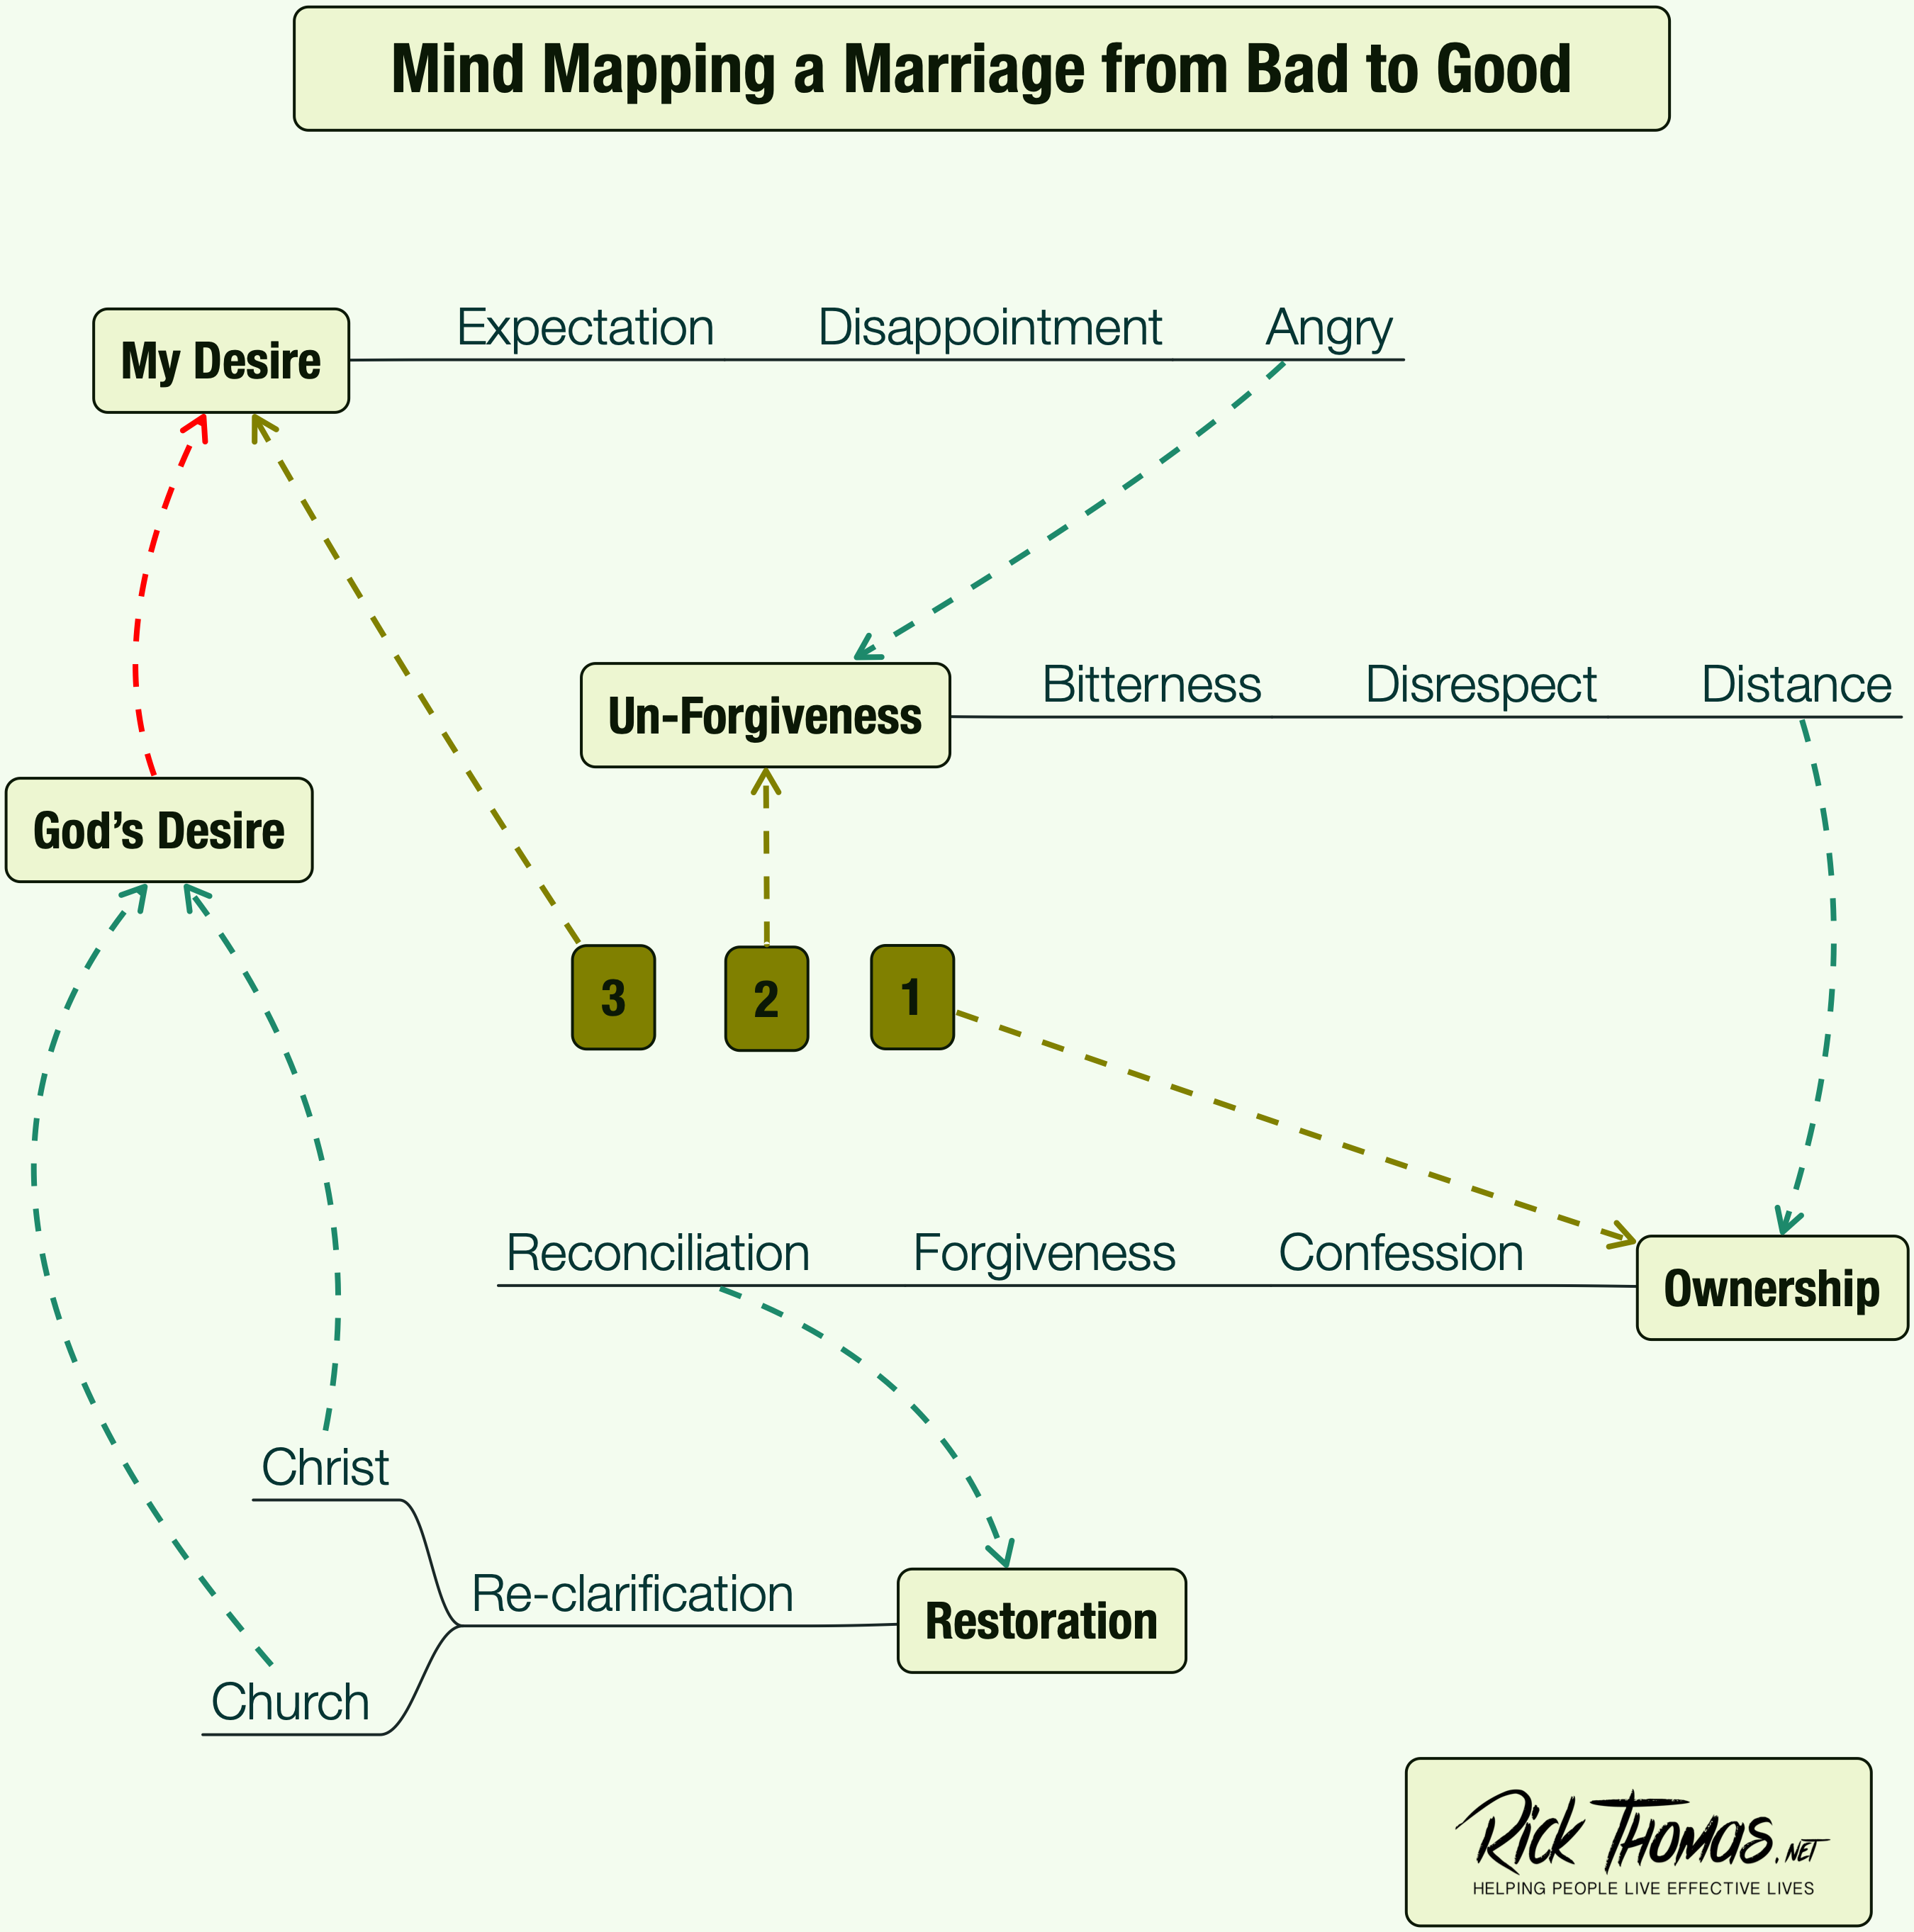 Mind Mapping a Marriage from Bad to Good on love wins map, numerology map, addiction map, metaphysical map, 9gag map, food issues map, inbreeding map, middle class map, sovereignty map, stages of life map, doctrine map, long trip map, birth control map, lawyers map, family interaction map, modernism map, heredity map, new moon map, life calling map,